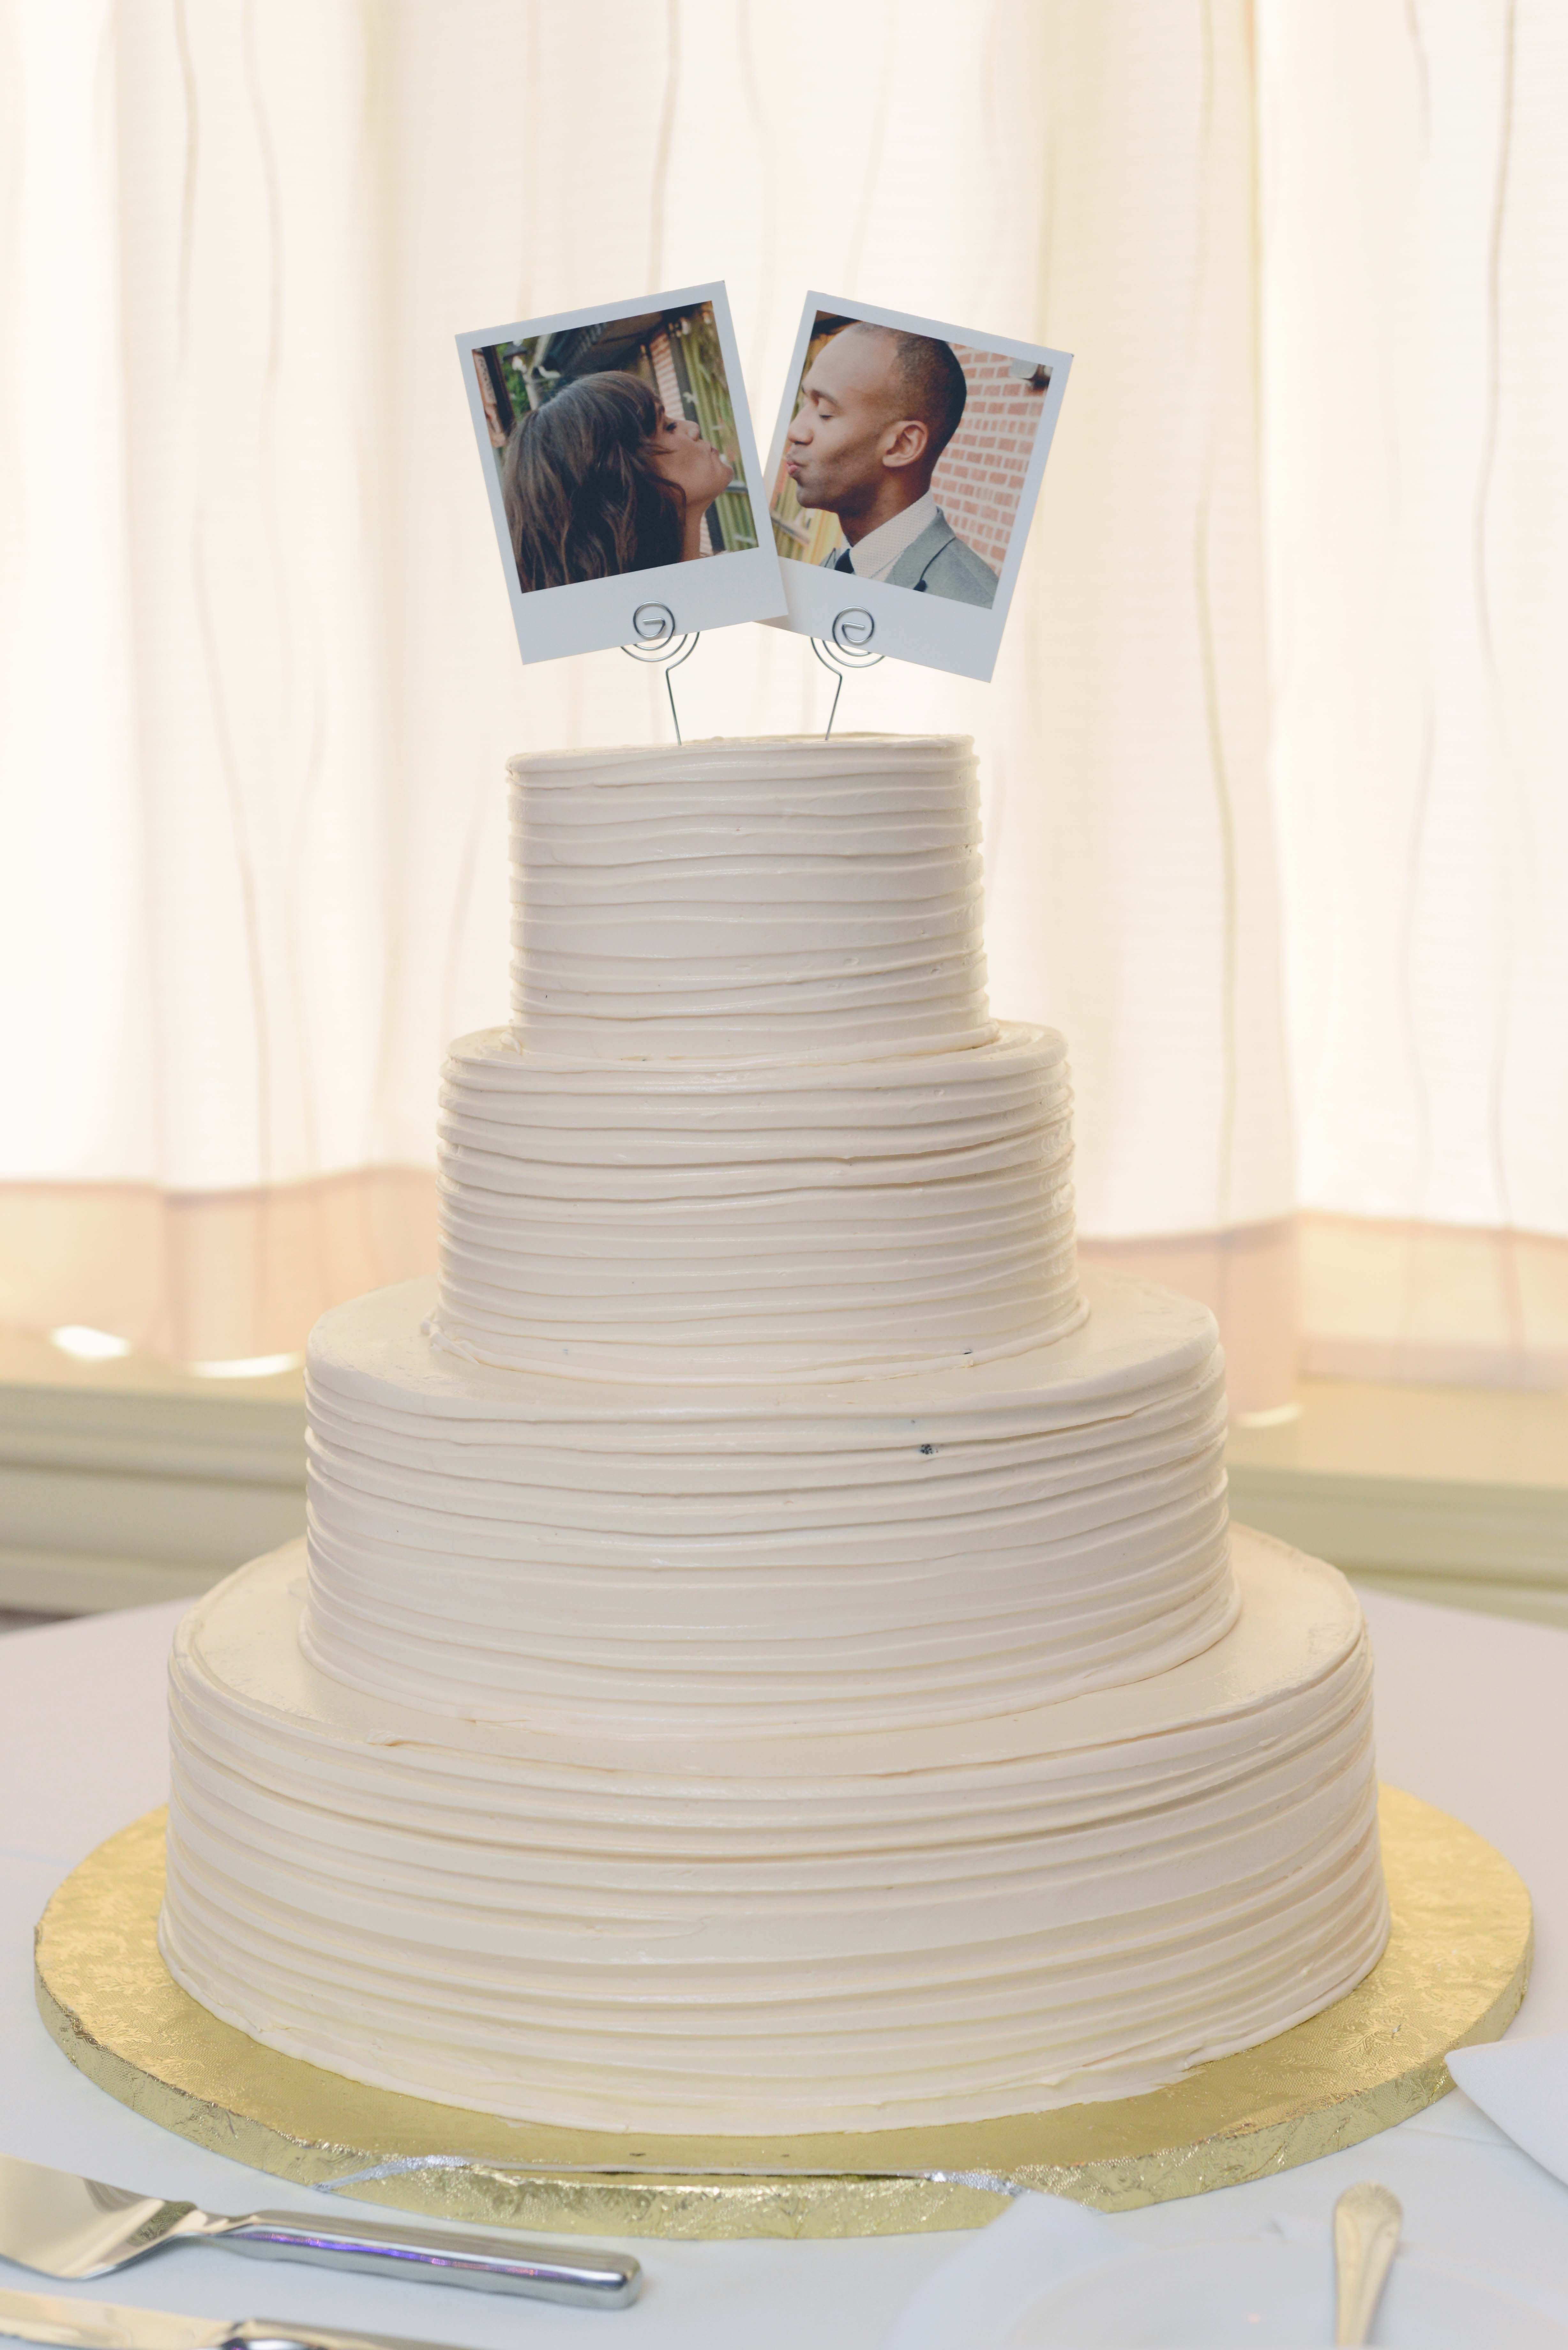 Polaroid Wedding Cake Topper Polaroid Topper Porter and Reel